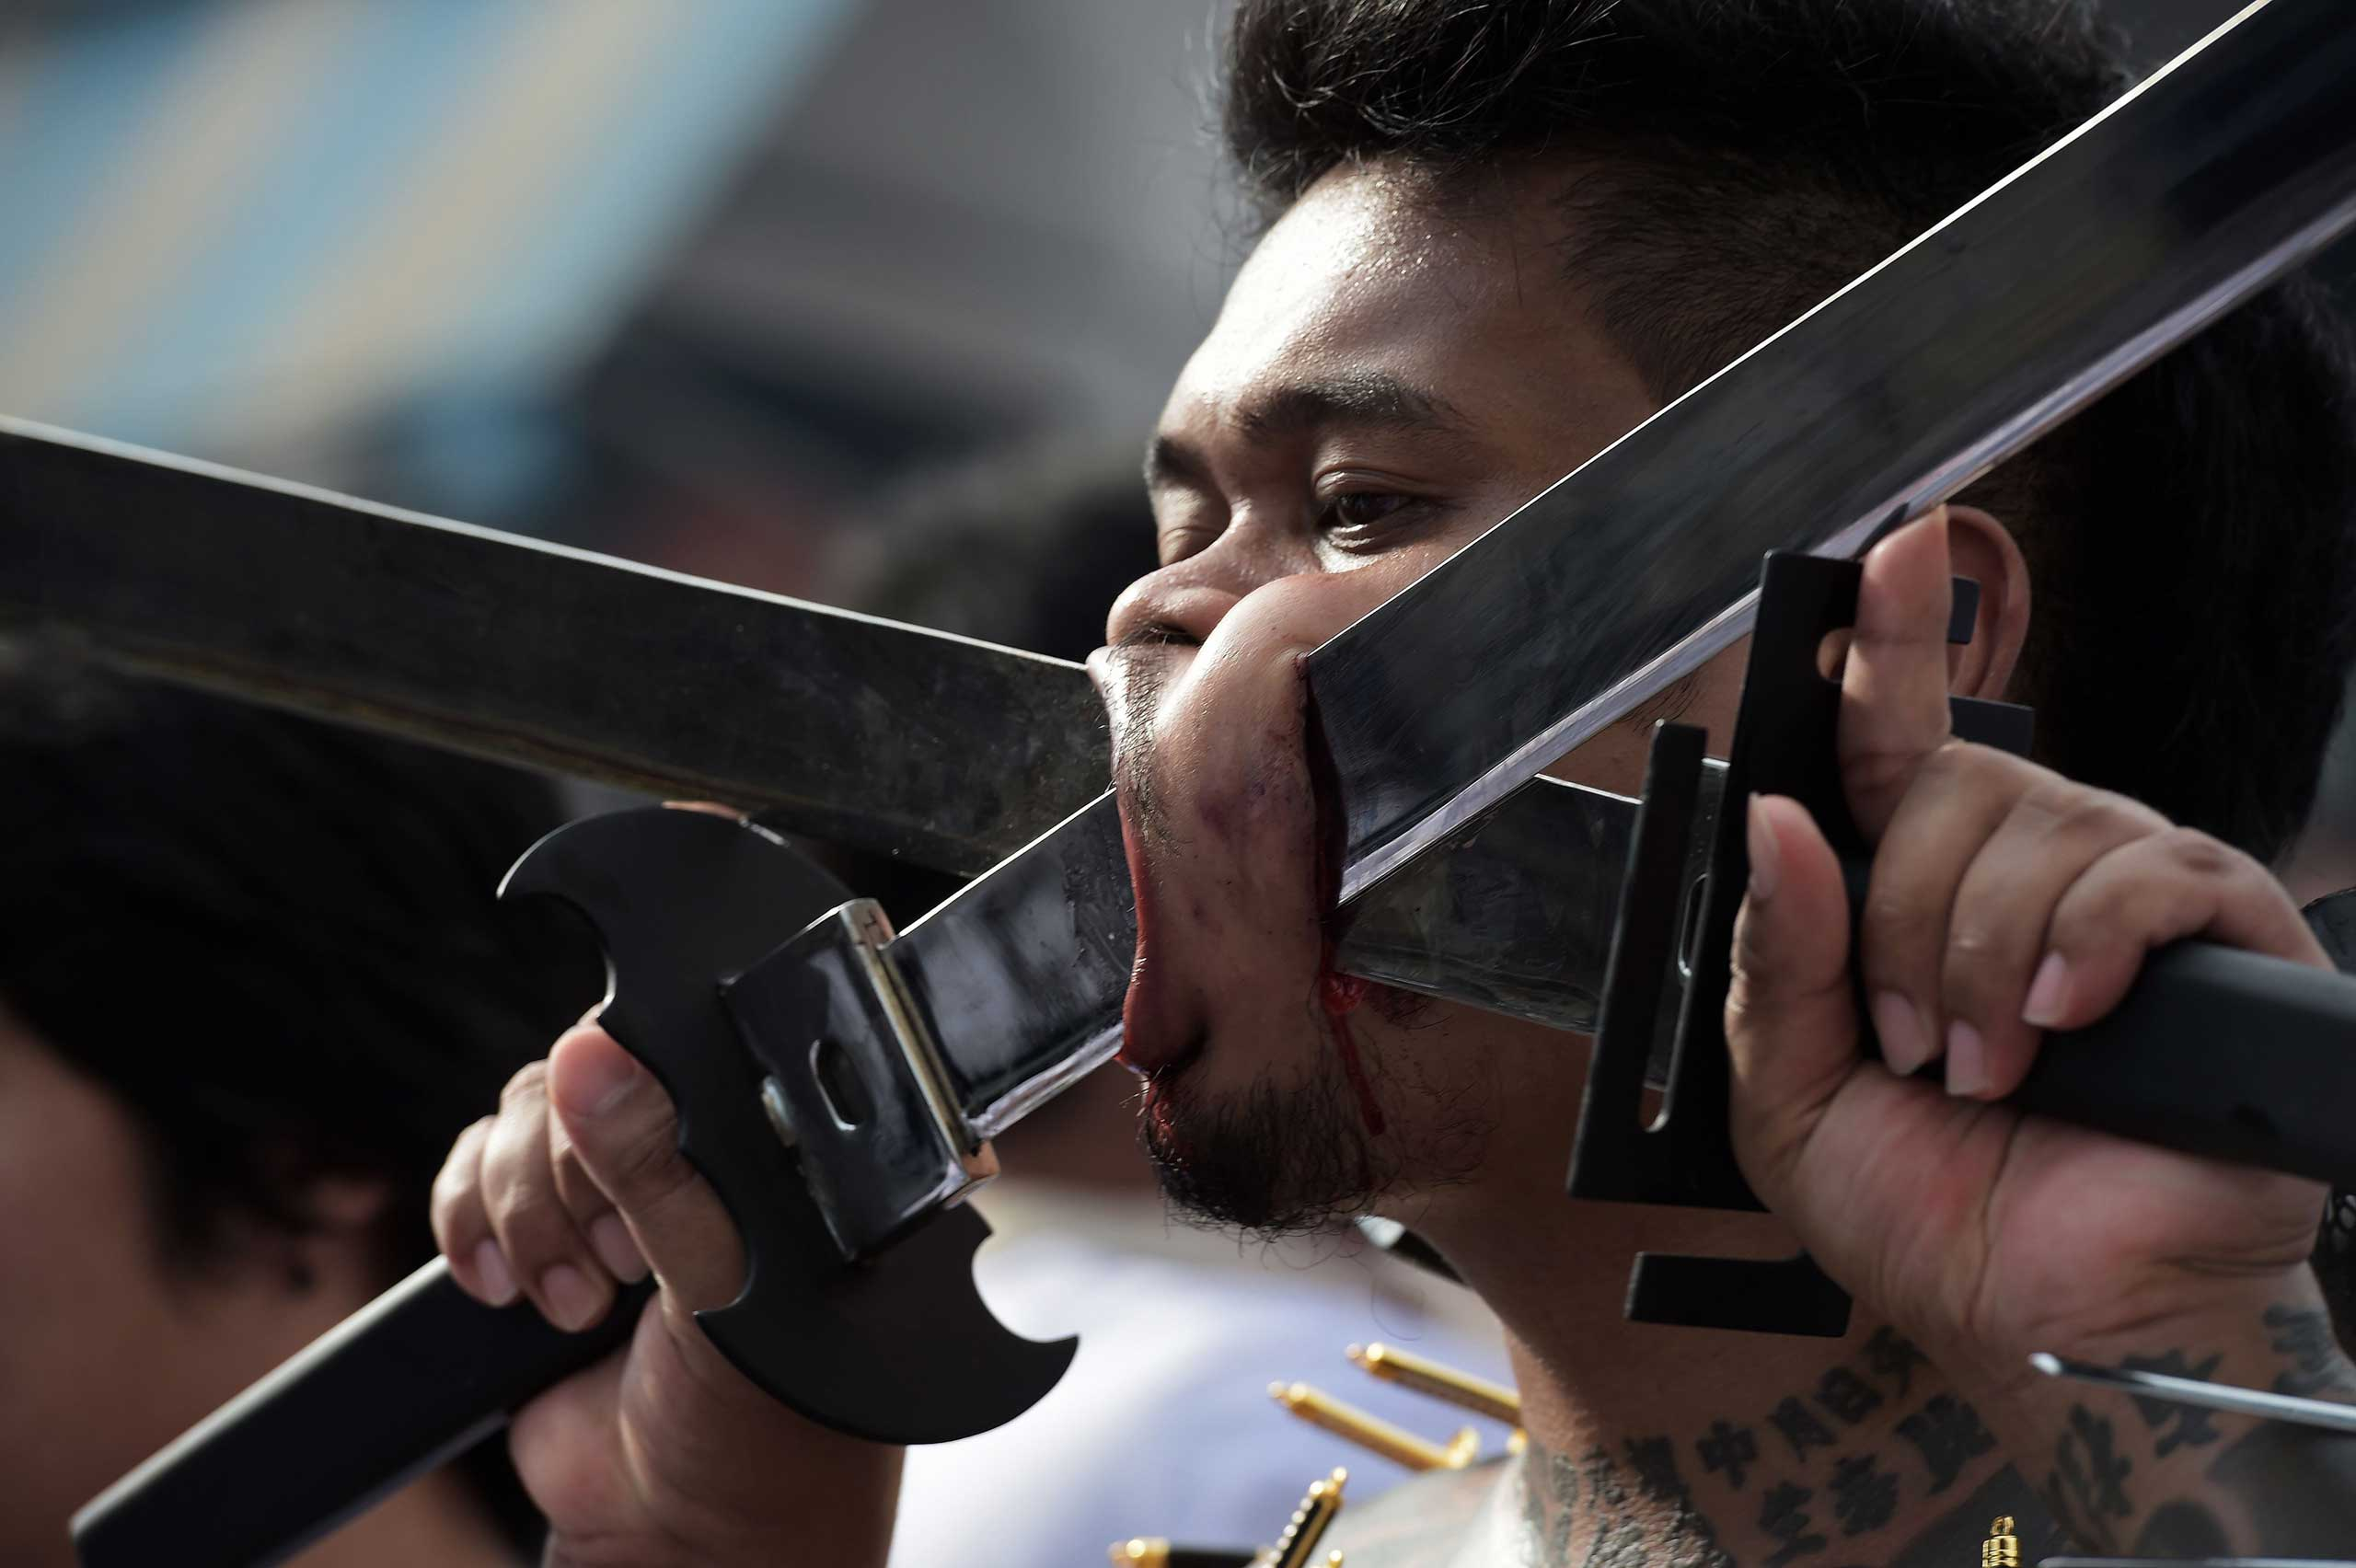 Sept. 29, 2014. A devotee of the Chinese Bang Neow Shrine with swords inserted into his cheeks takes part in a street procession during the annual Vegetarian Festival in the southern Thai town of Phuket. During the festival,  religious devotees slash themselves with swords, pierce their cheeks with sharp objects and commit other painful acts to purify themselves, taking on the sins of the community.